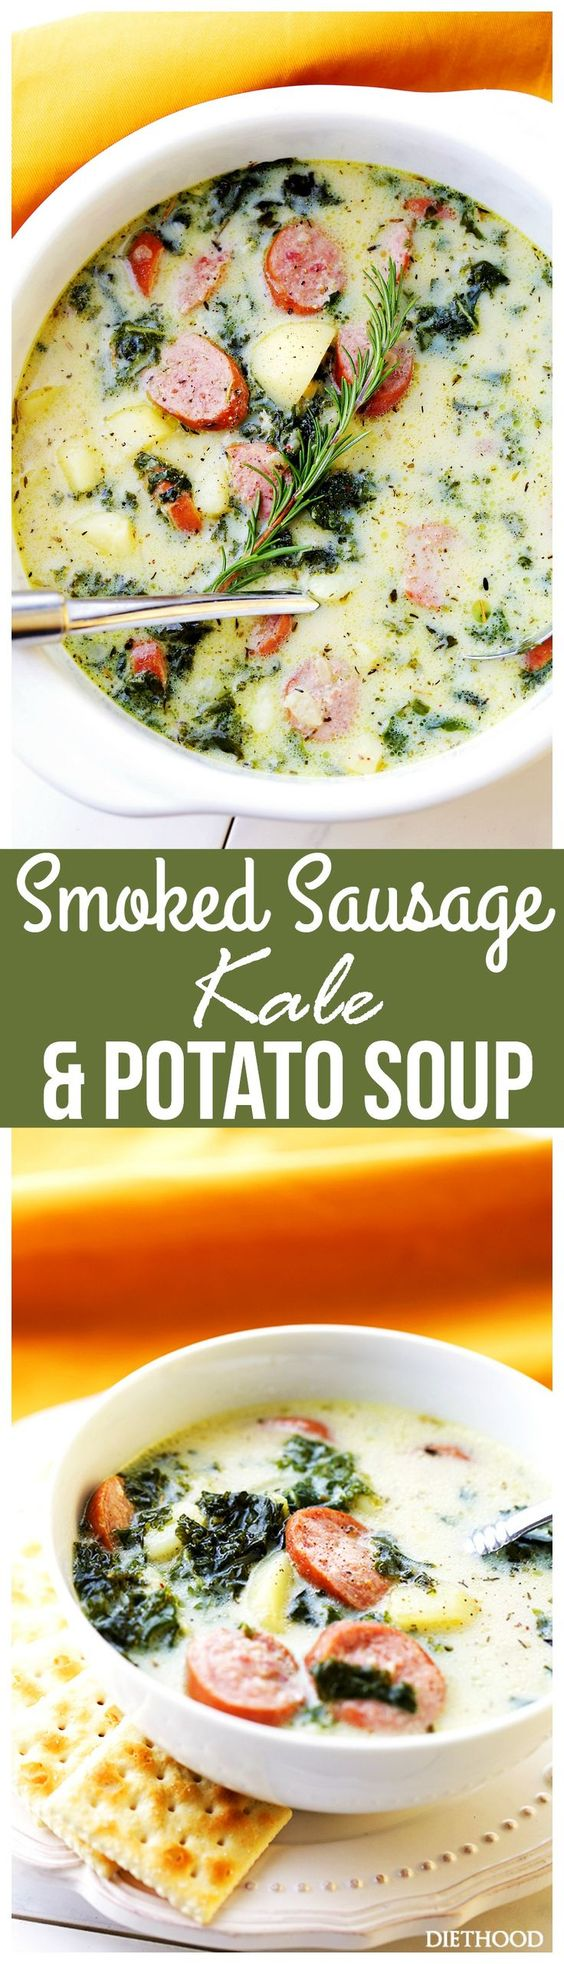 the best homemade soups recipes easy quick and yummy comfort food